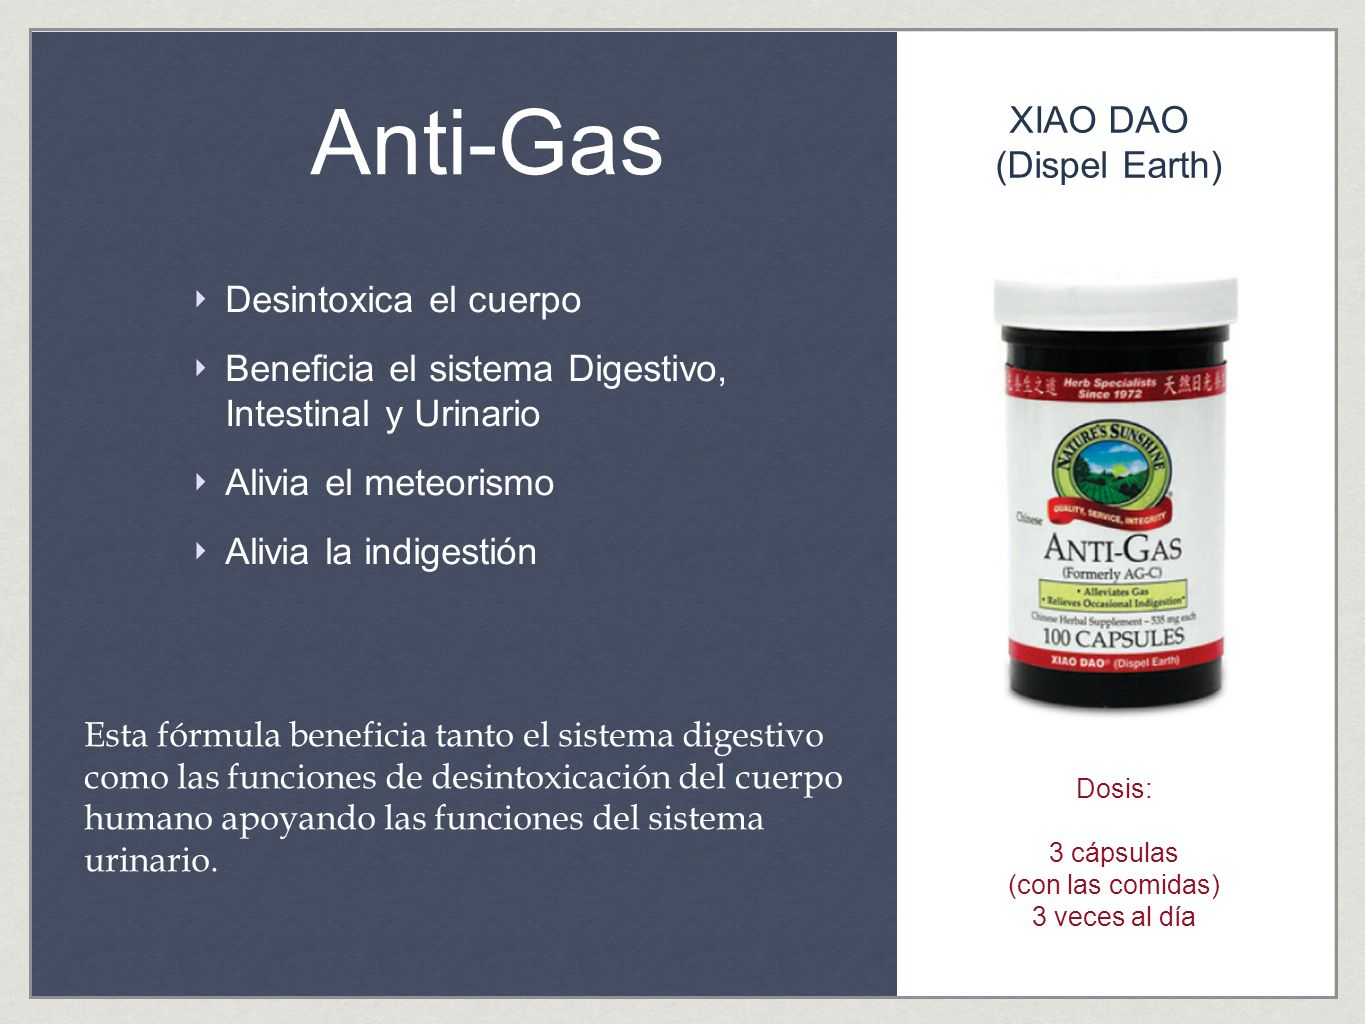 Anti-Gas XIAO DAO (Dispel Earth) Desintoxica el cuerpo